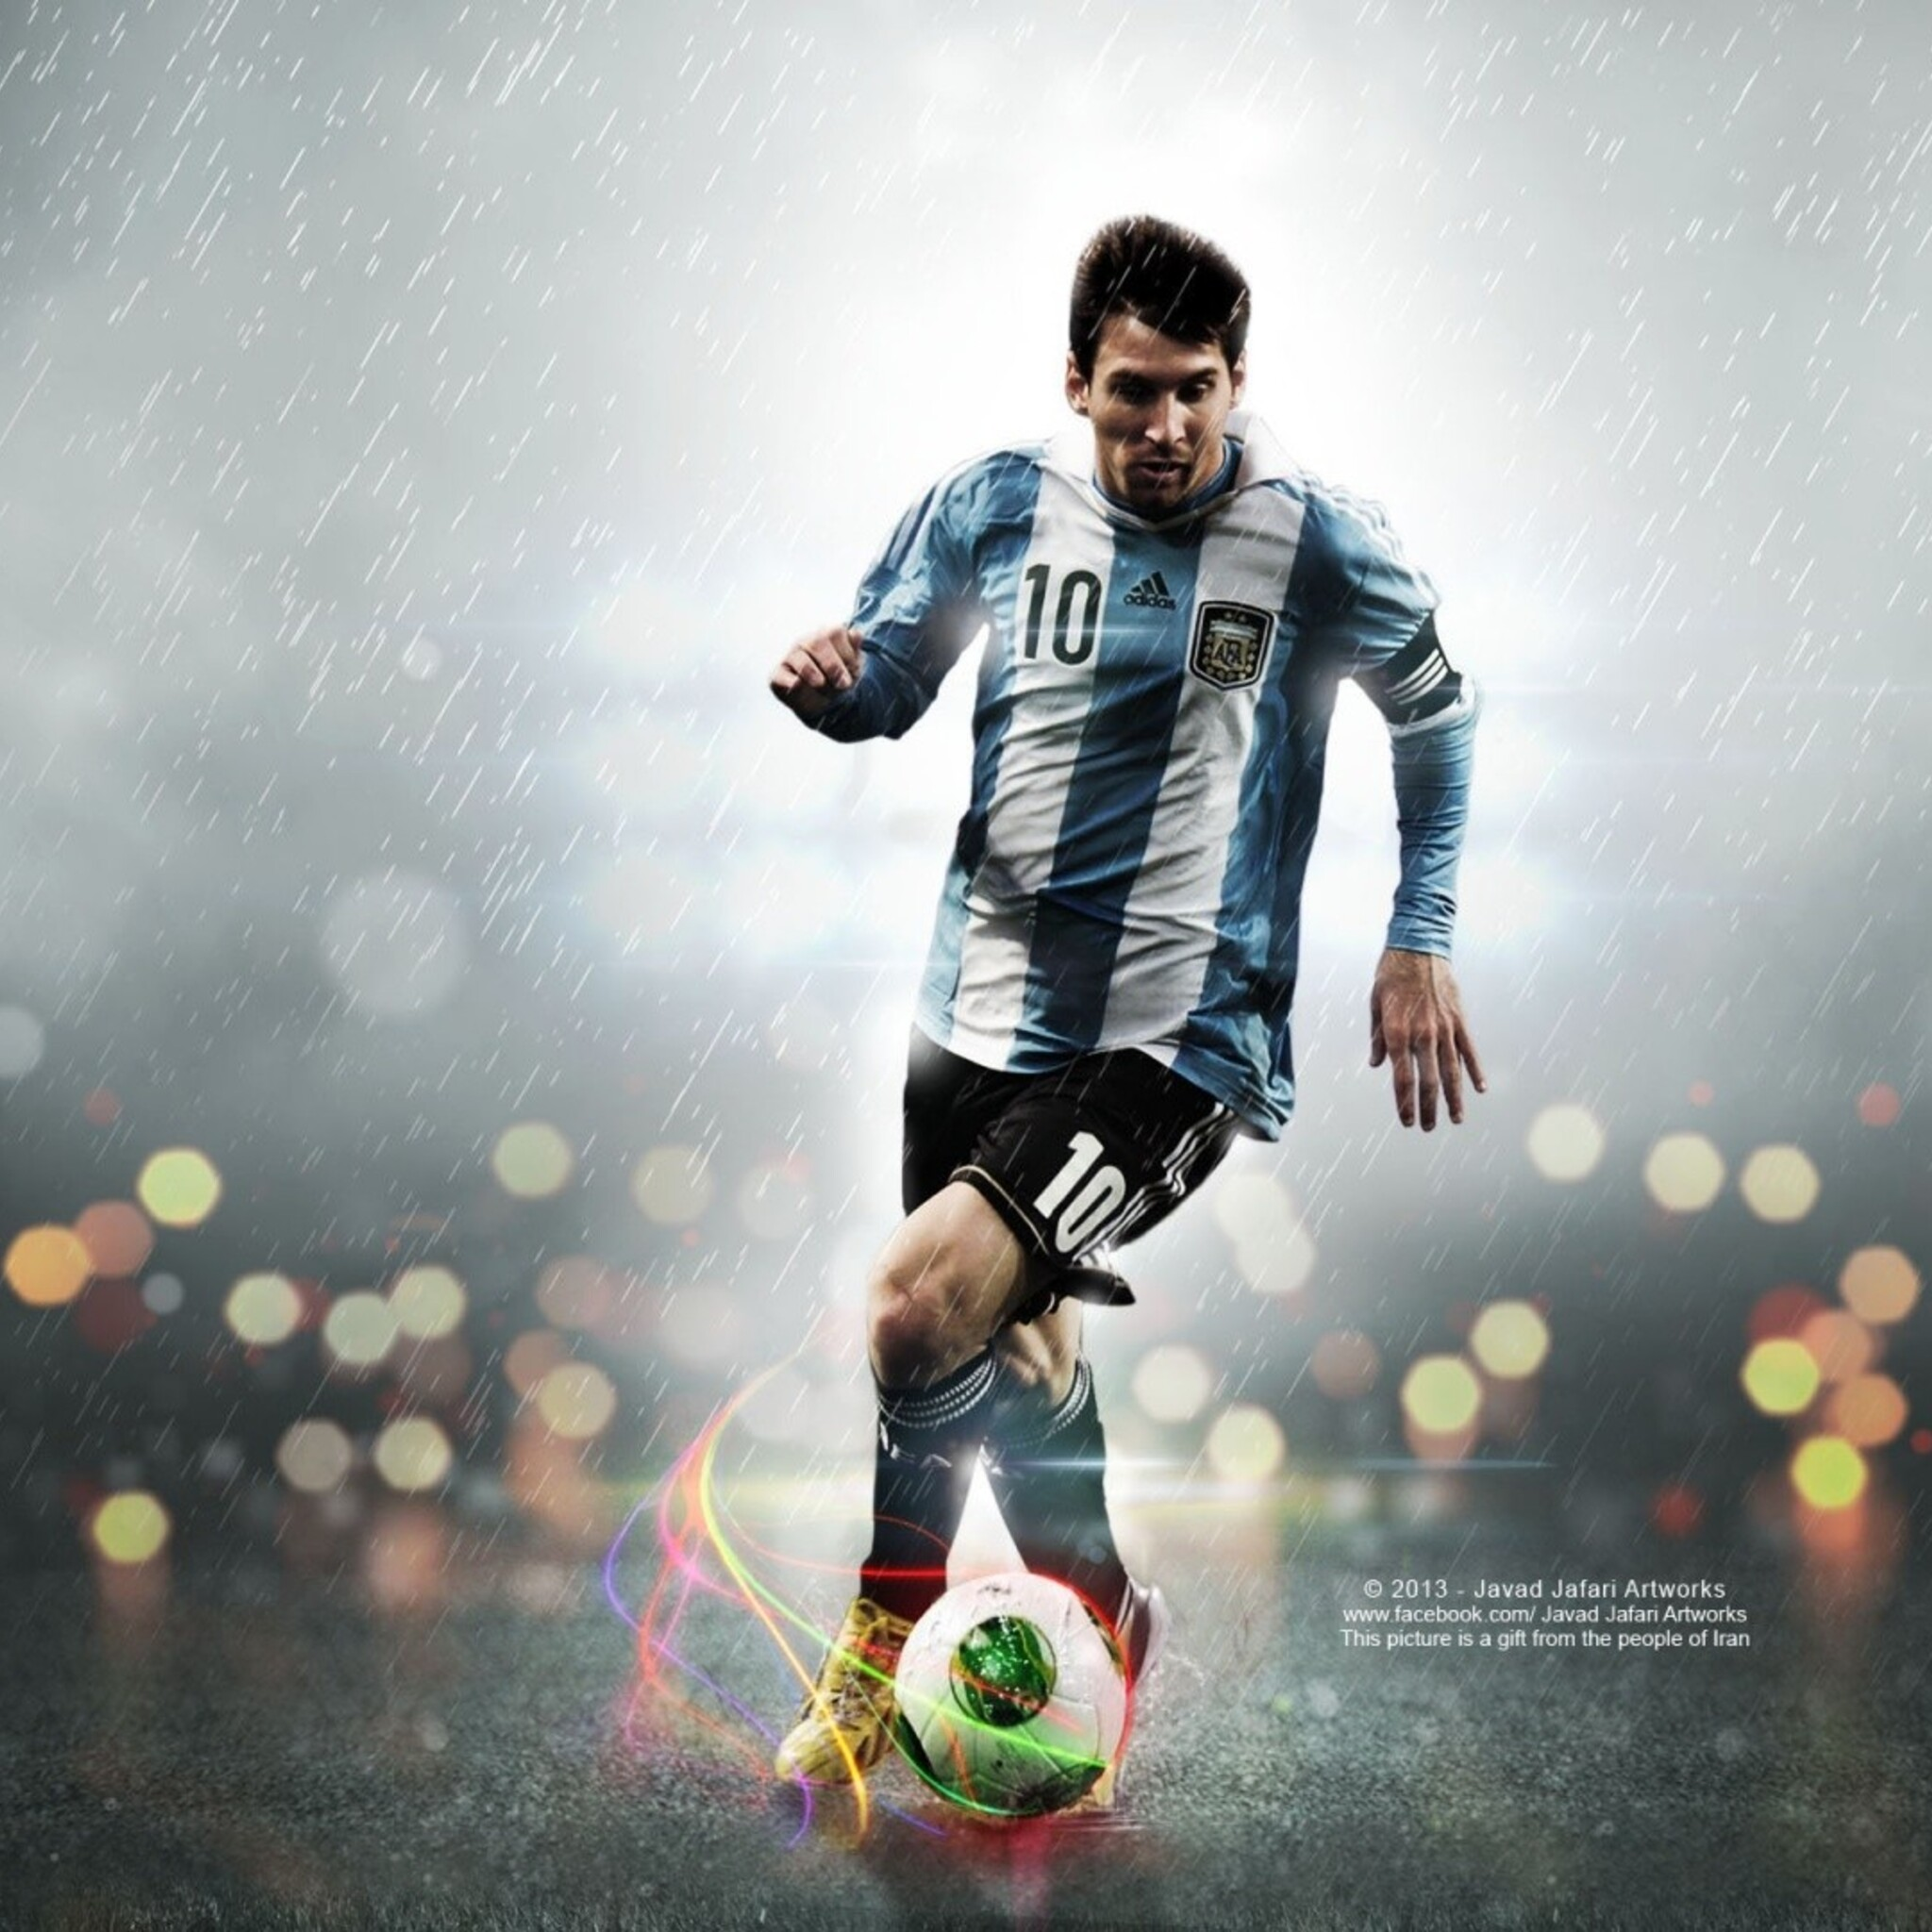 2048x2048 Lionel Messi Ipad Air HD 4k Wallpapers, Images